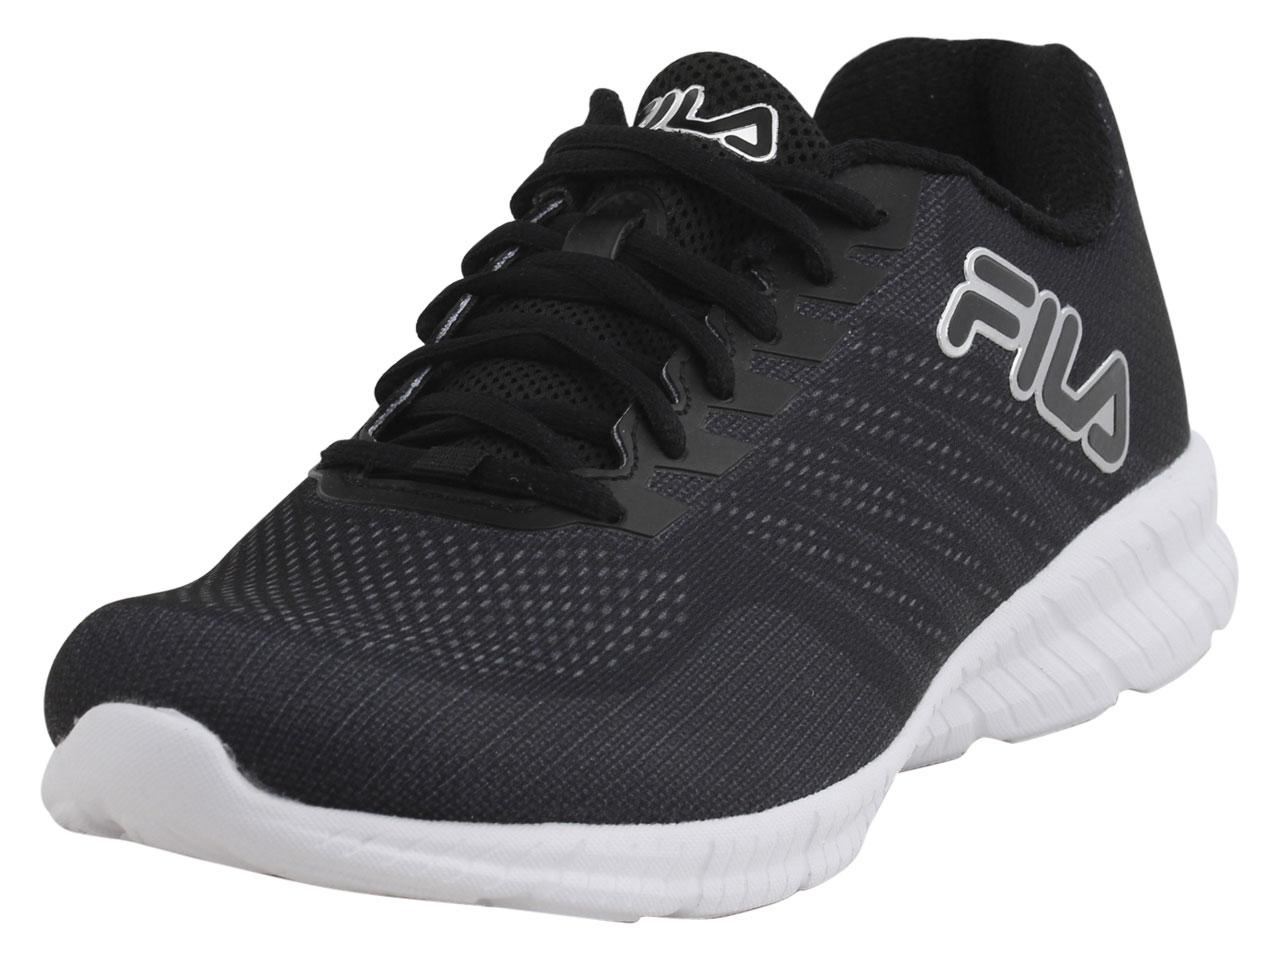 Fila Men's Windracer 3 Memory Foam Running Sneakers Shoes